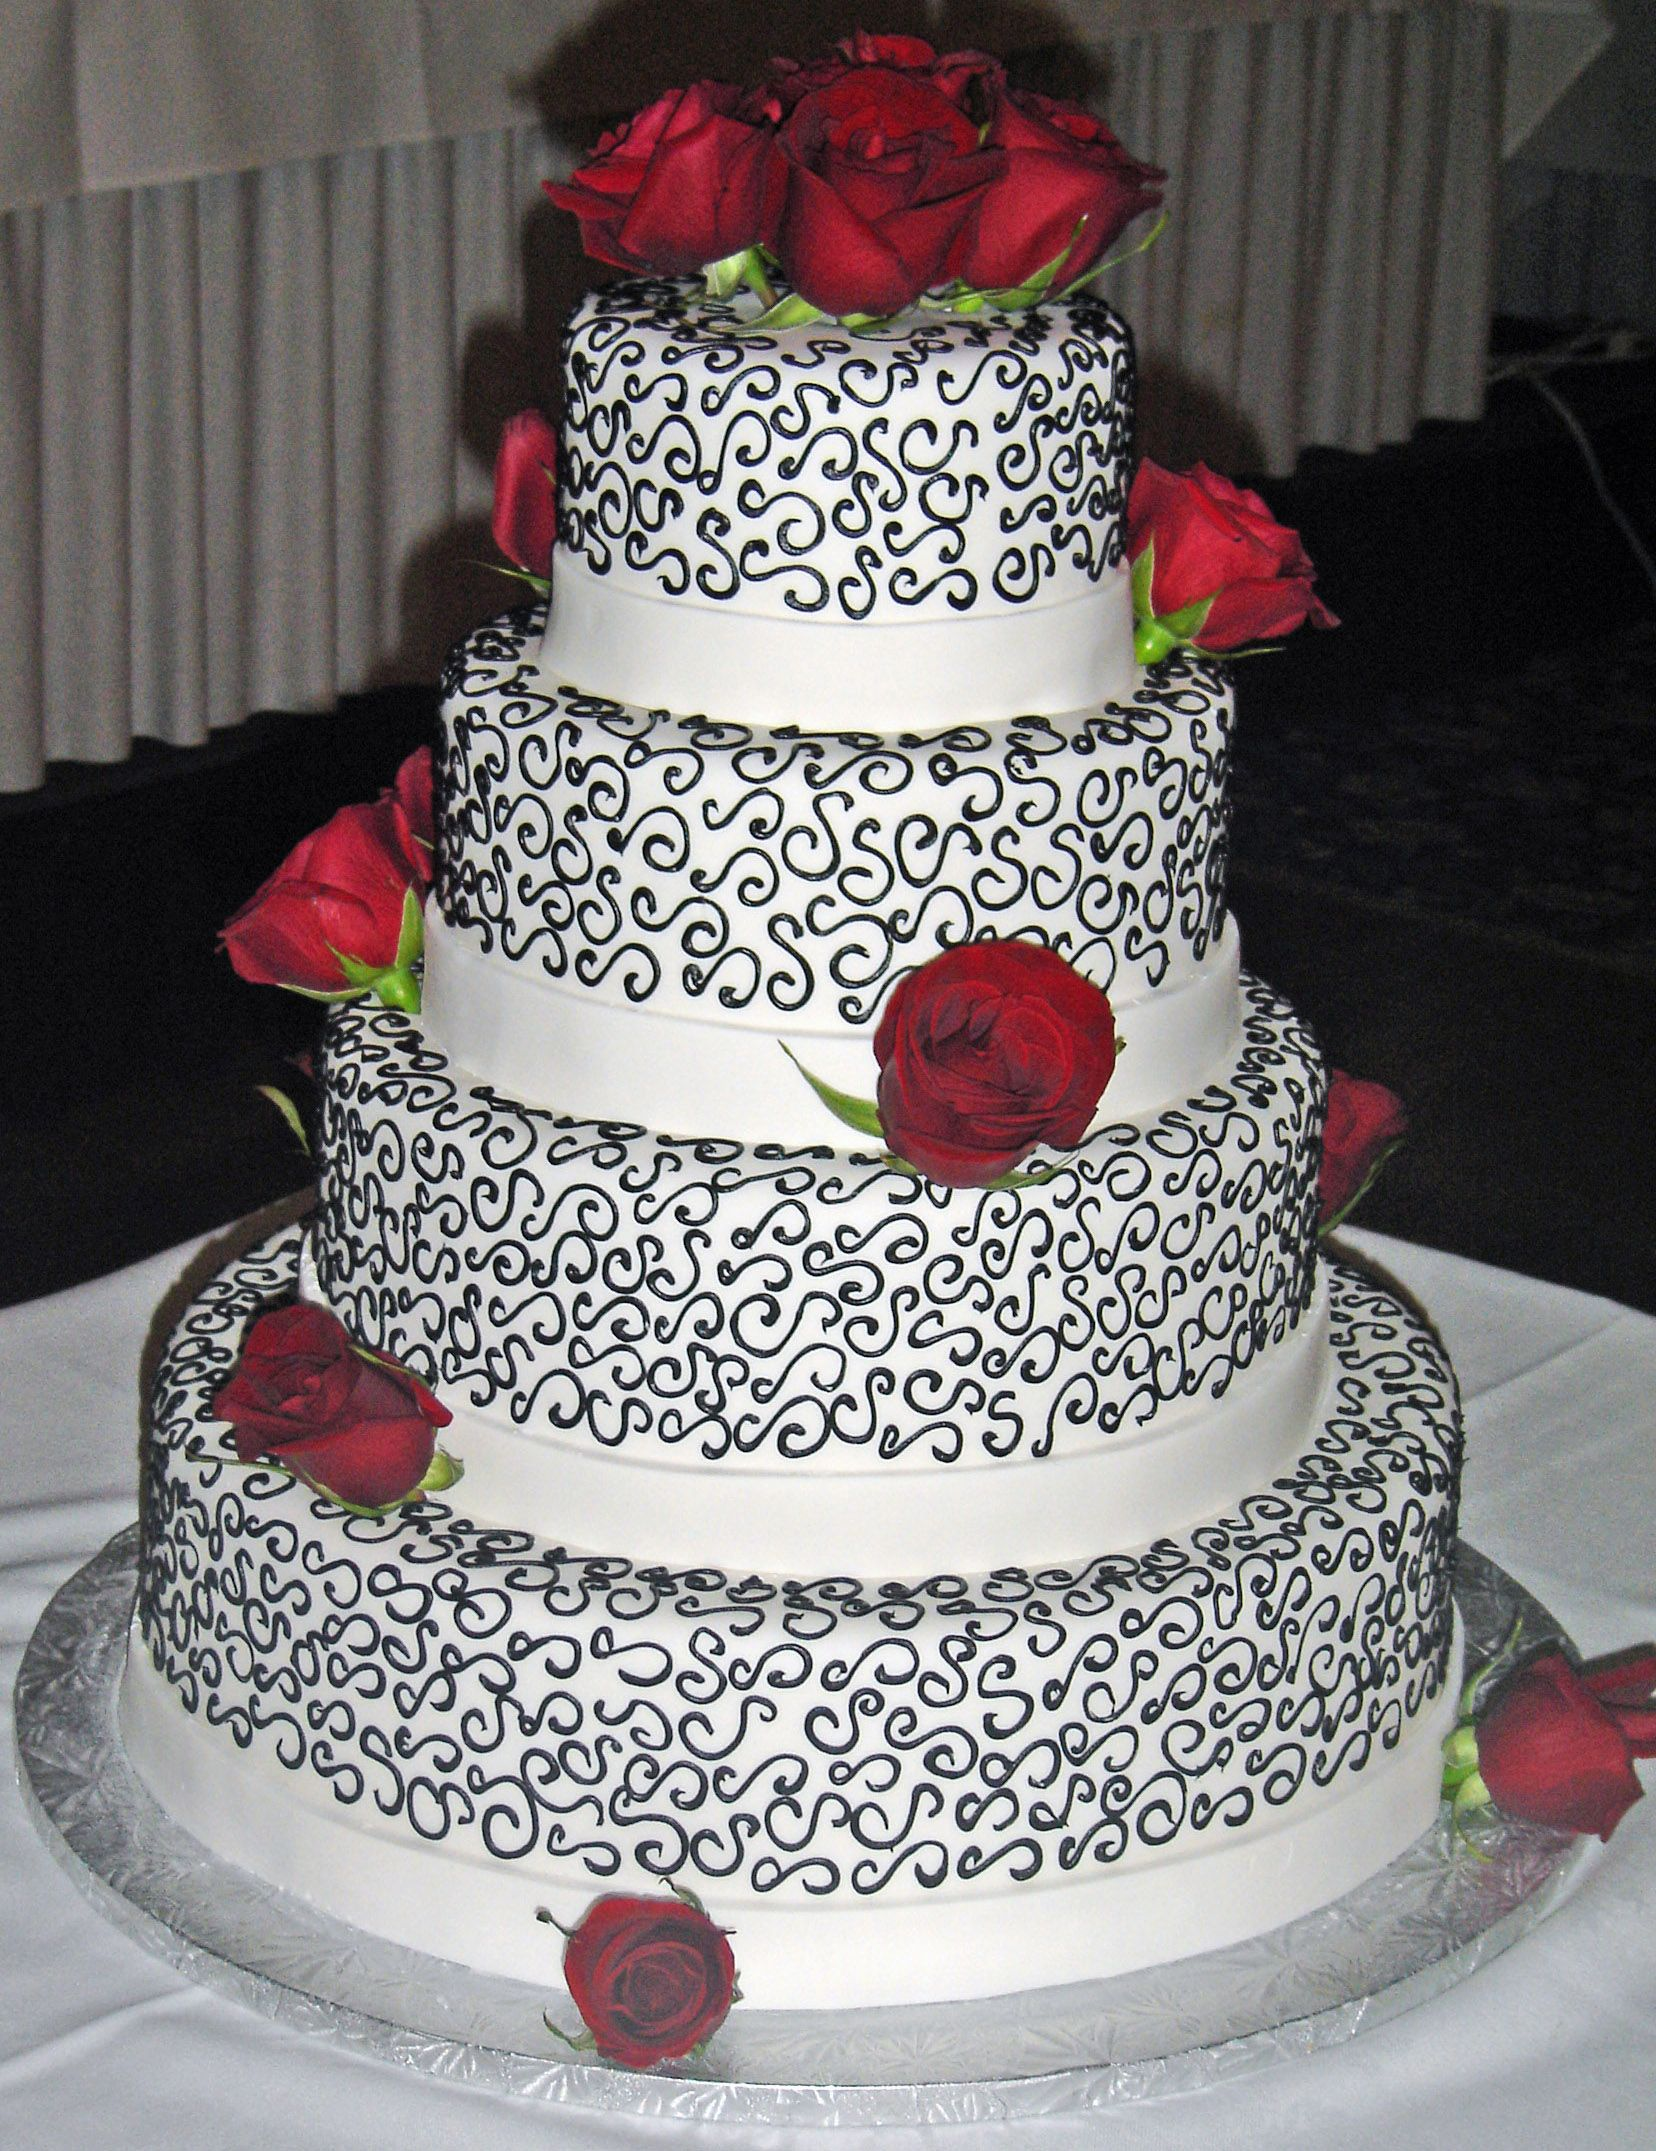 Elegant Wedding Cakes 17 HD Wallpapers 553 HD